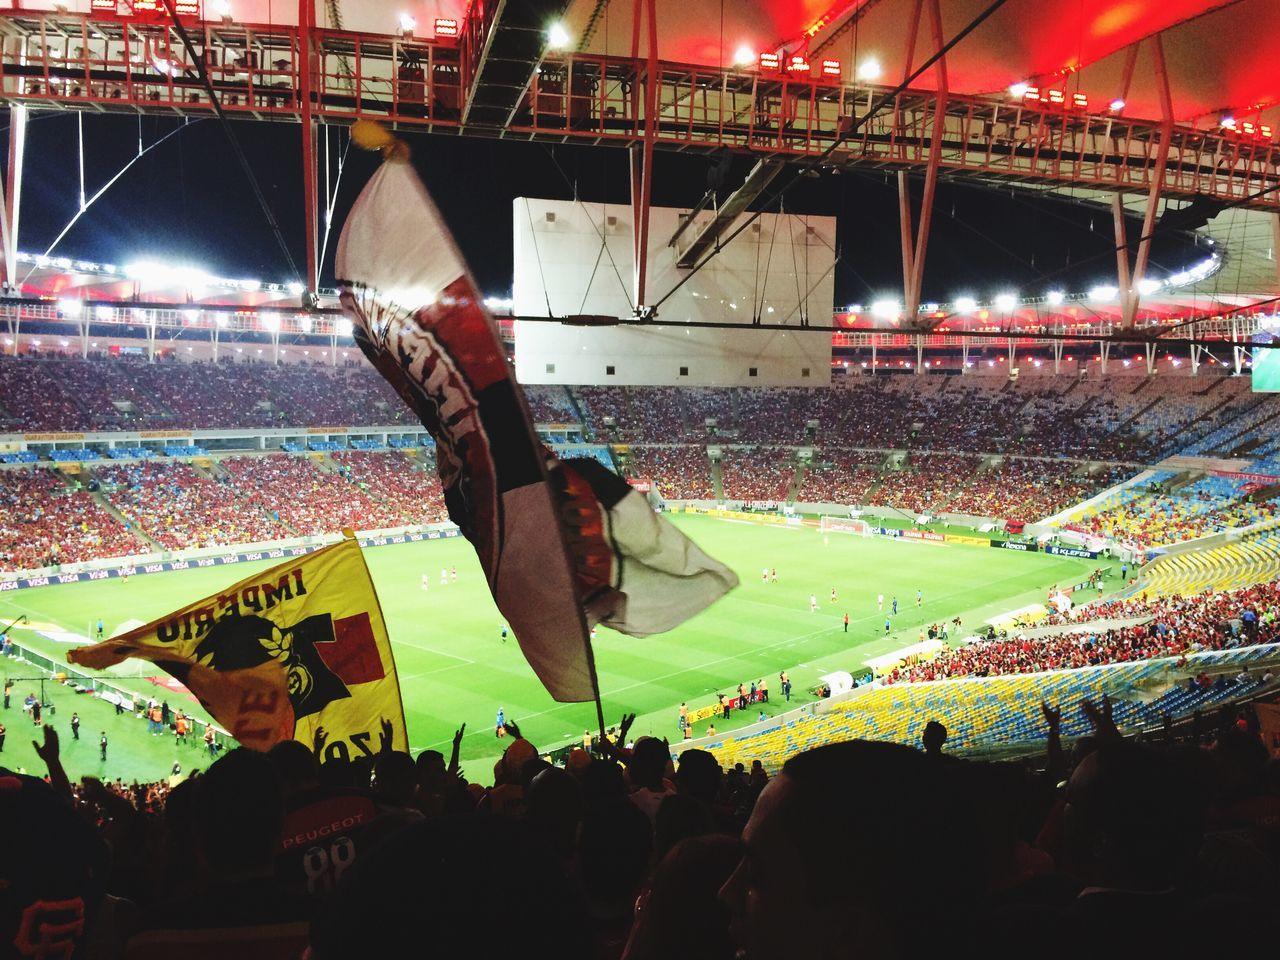 crowd, stadium, large group of people, soccer, audience, sport, spectator, fan - enthusiast, illuminated, real people, togetherness, night, flag, men, outdoors, architecture, people